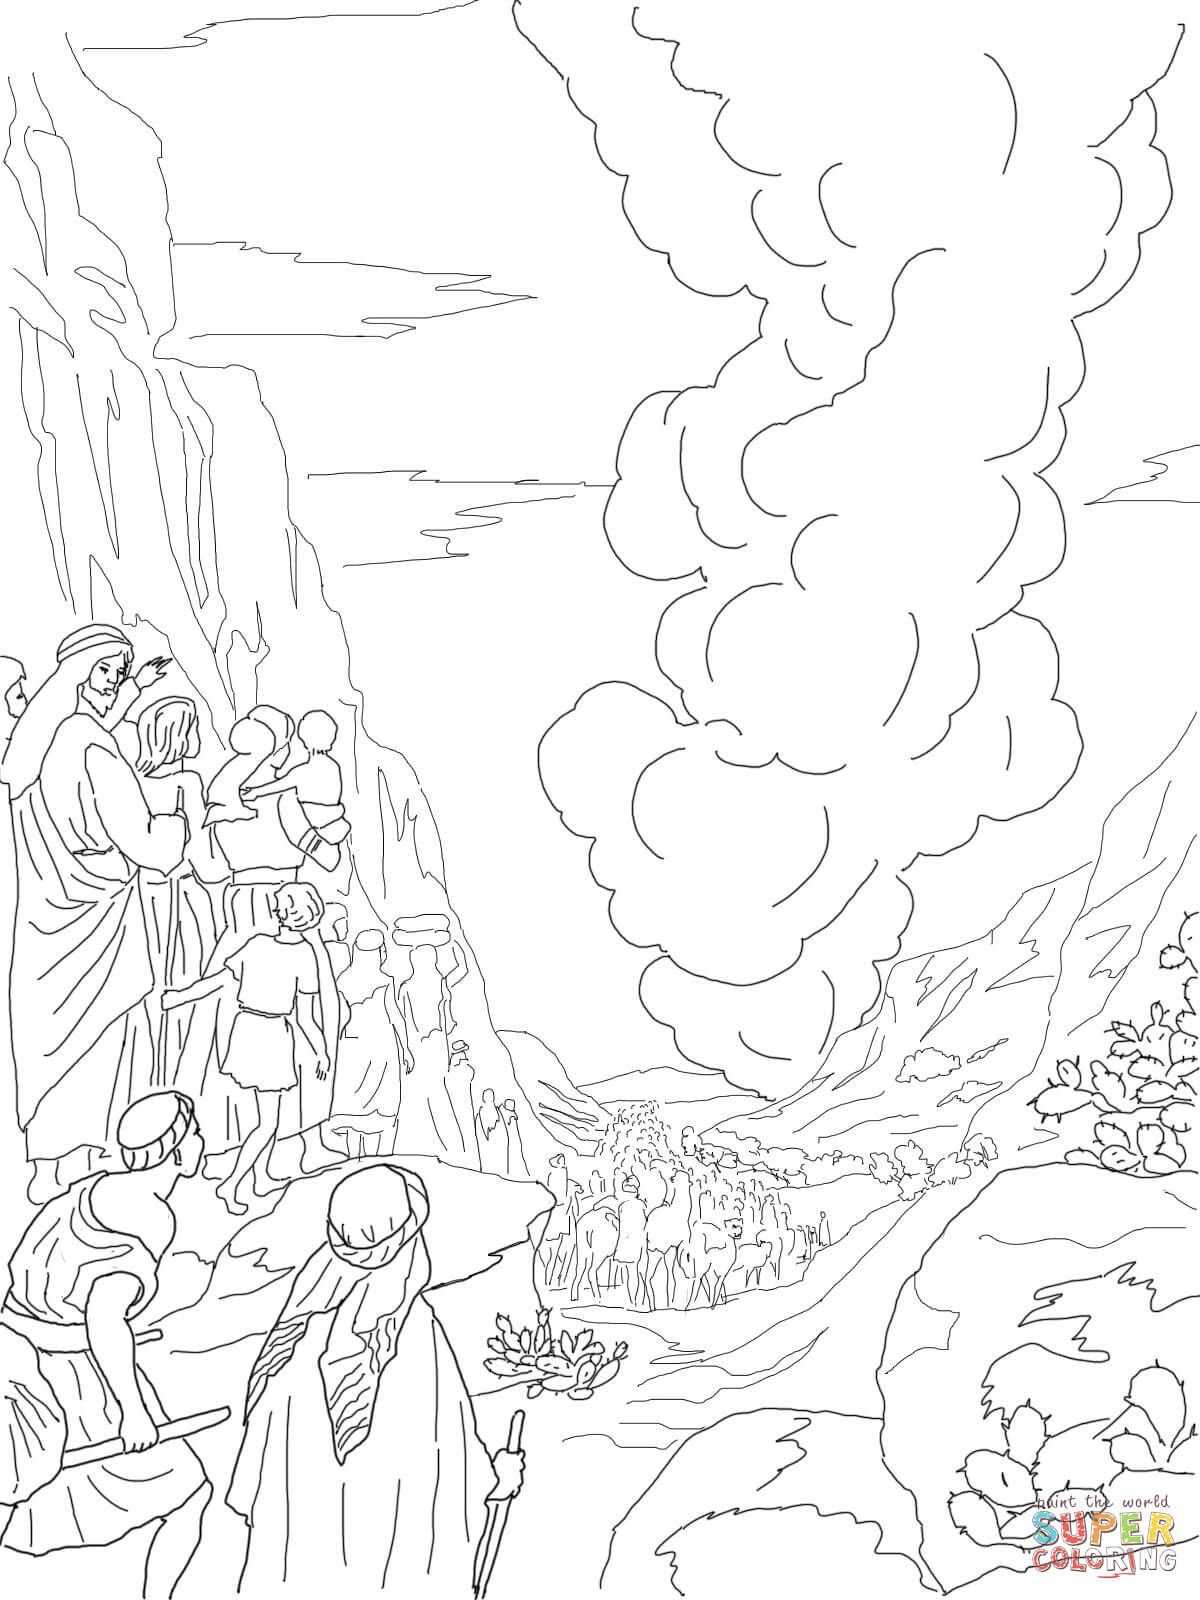 Coloring pages quail from heaven - Find This Pin And More On Christian Coloring Pages Ot